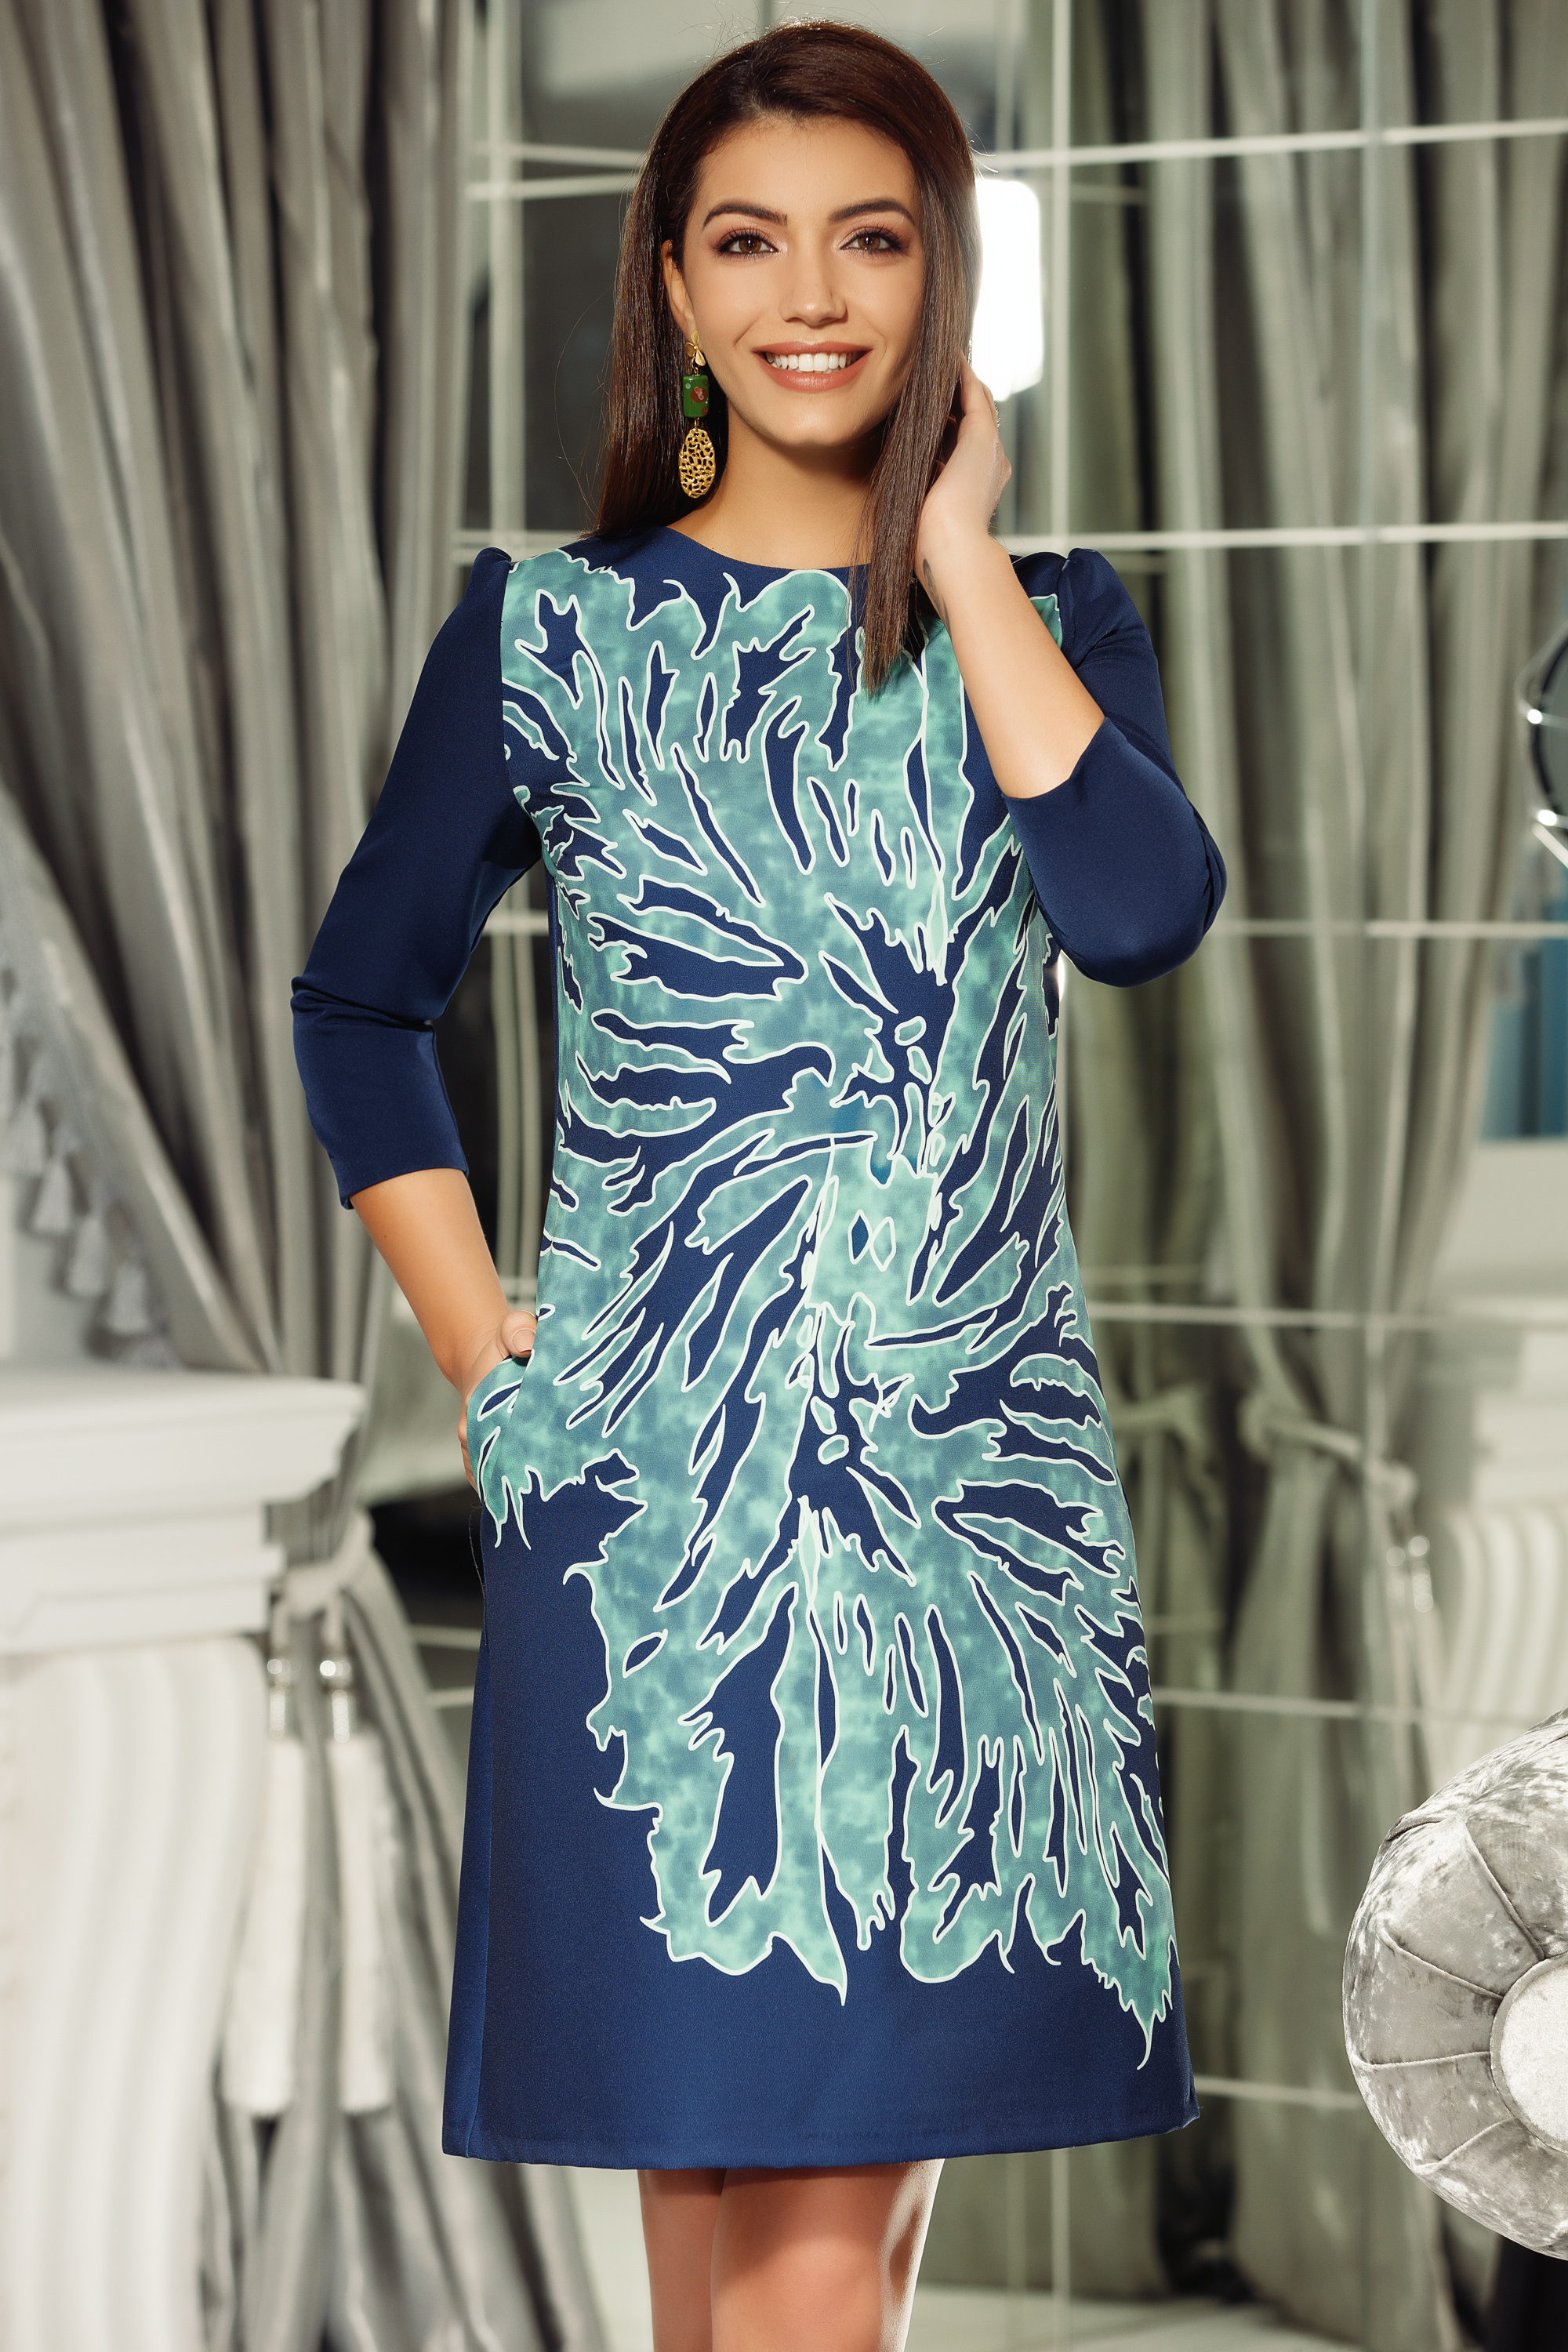 Fofy green office a-line dress slightly elastic fabric with 3/4 sleeves